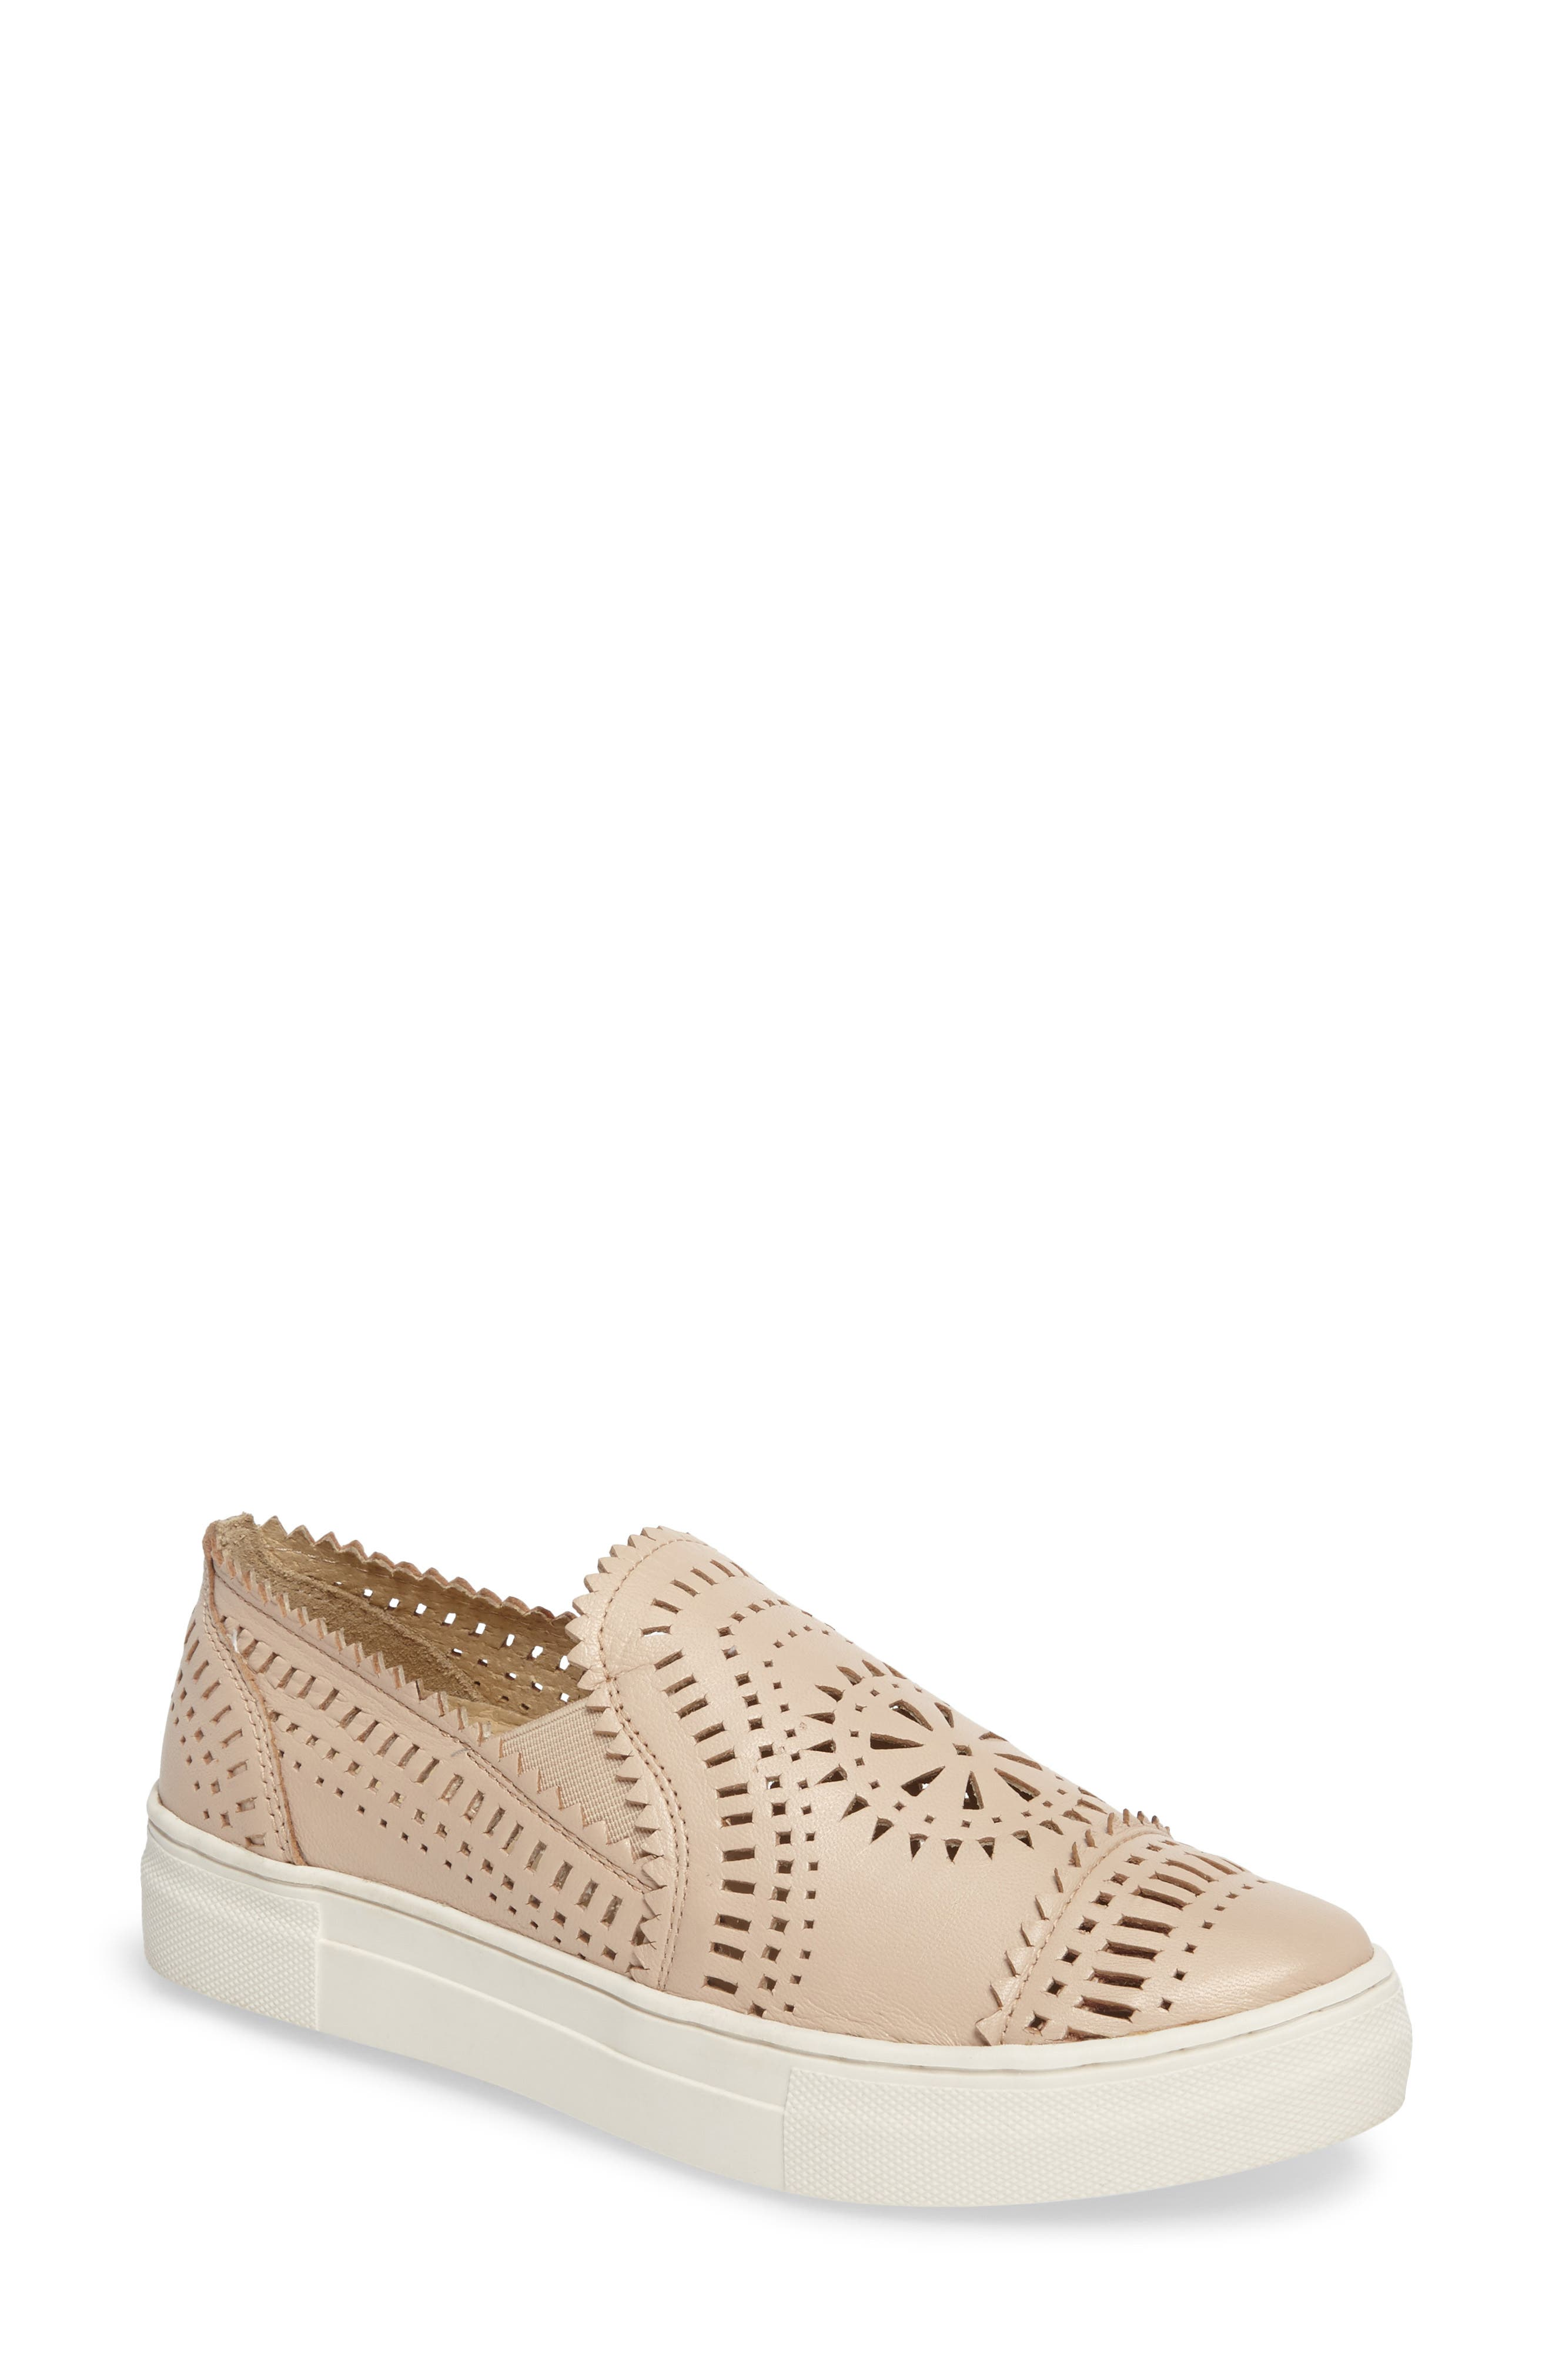 Seychelles So Nice Slip-On Sneaker (Women)